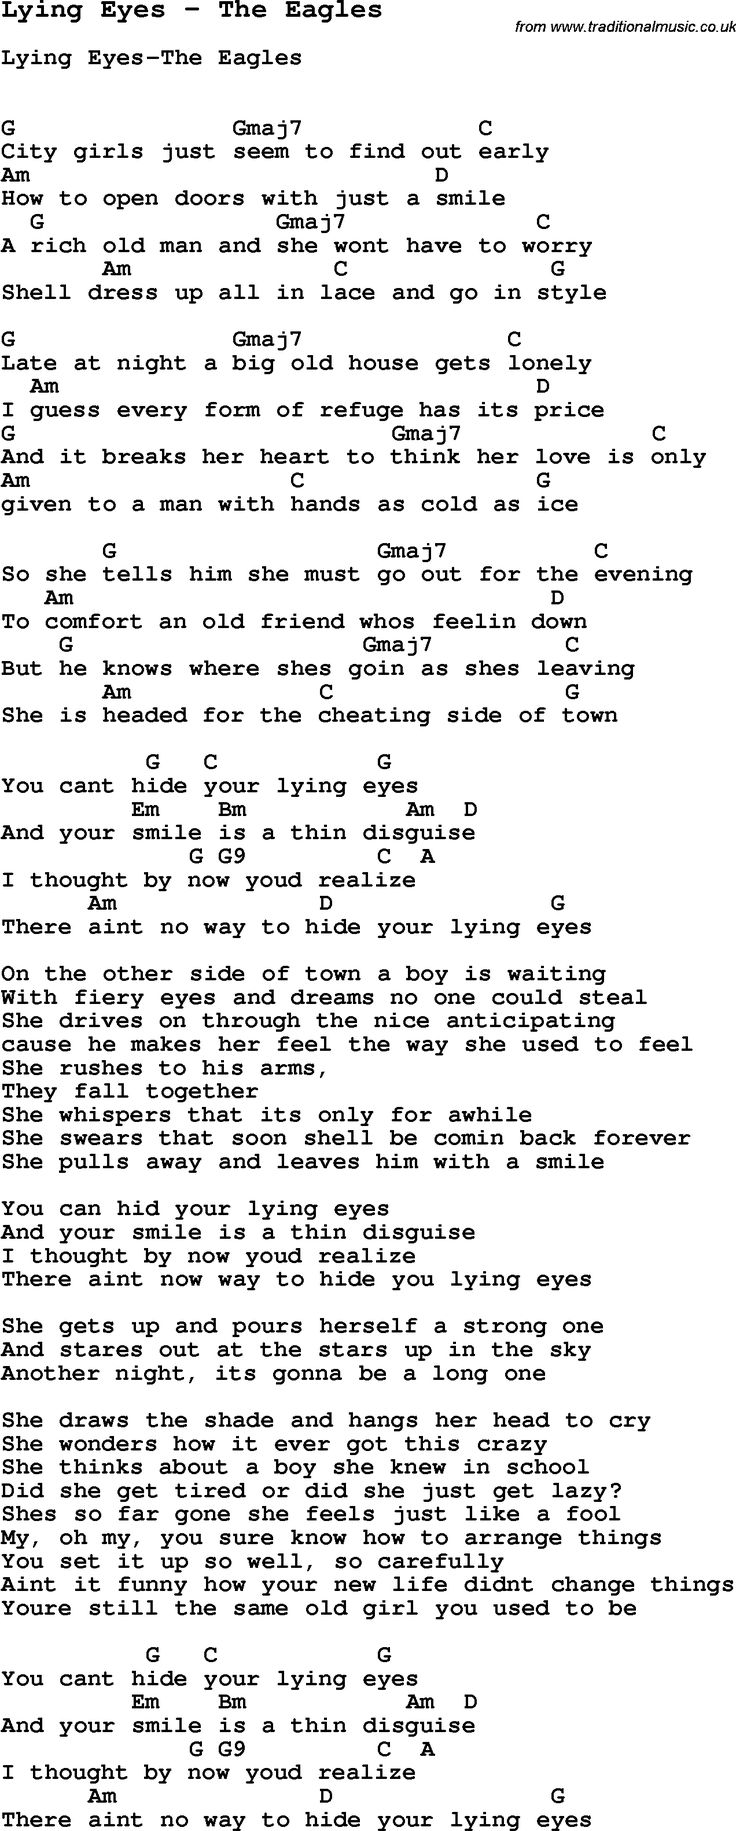 Best 25 beginner guitar chords ideas on pinterest guitar chords song lying eyes by the eagles with lyrics for vocal performance and accompaniment chords for hexwebz Images